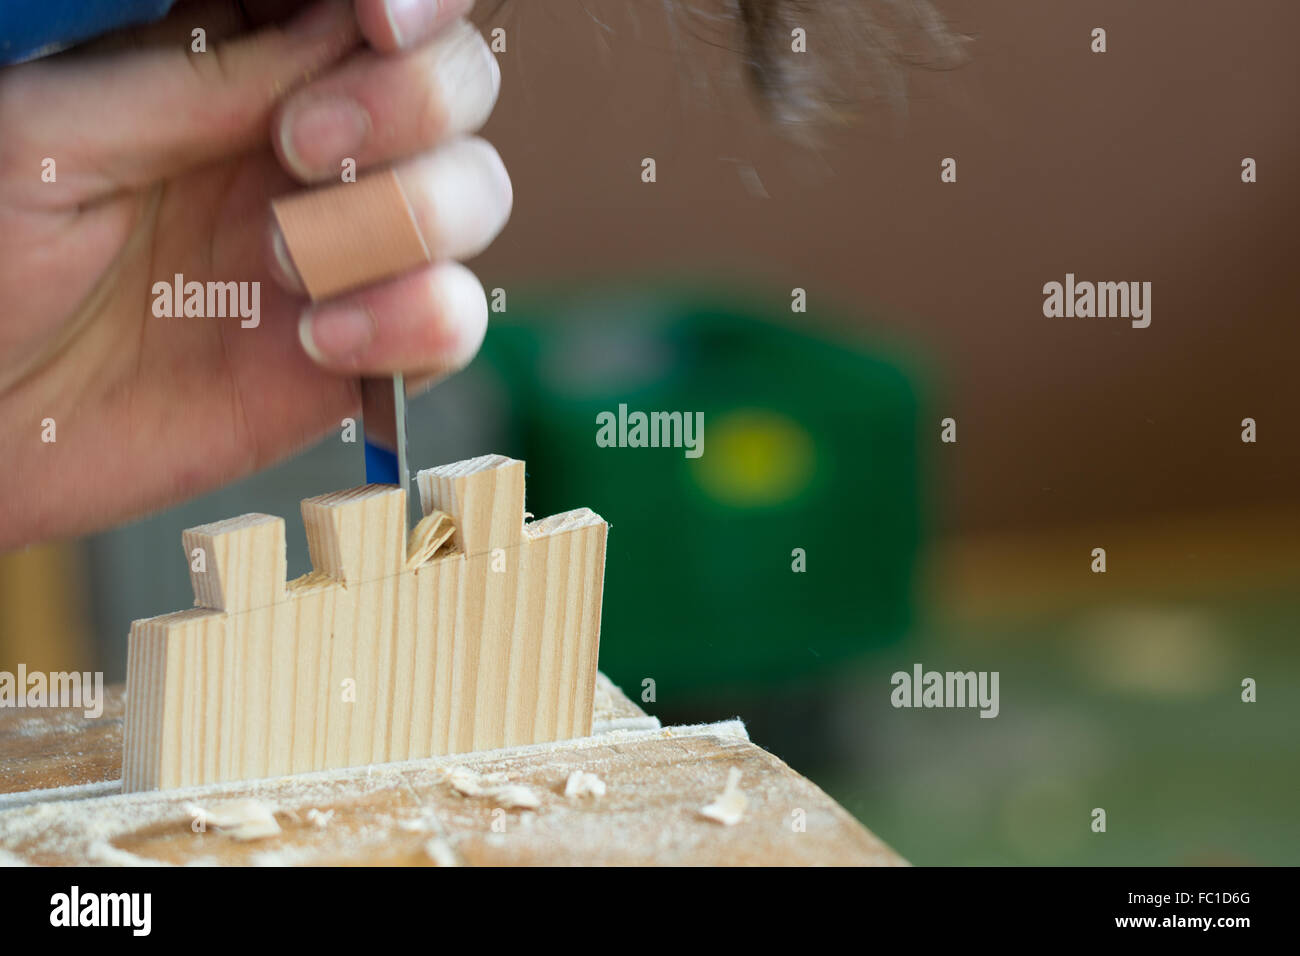 Carpenters construct a timber joint - Stock Image